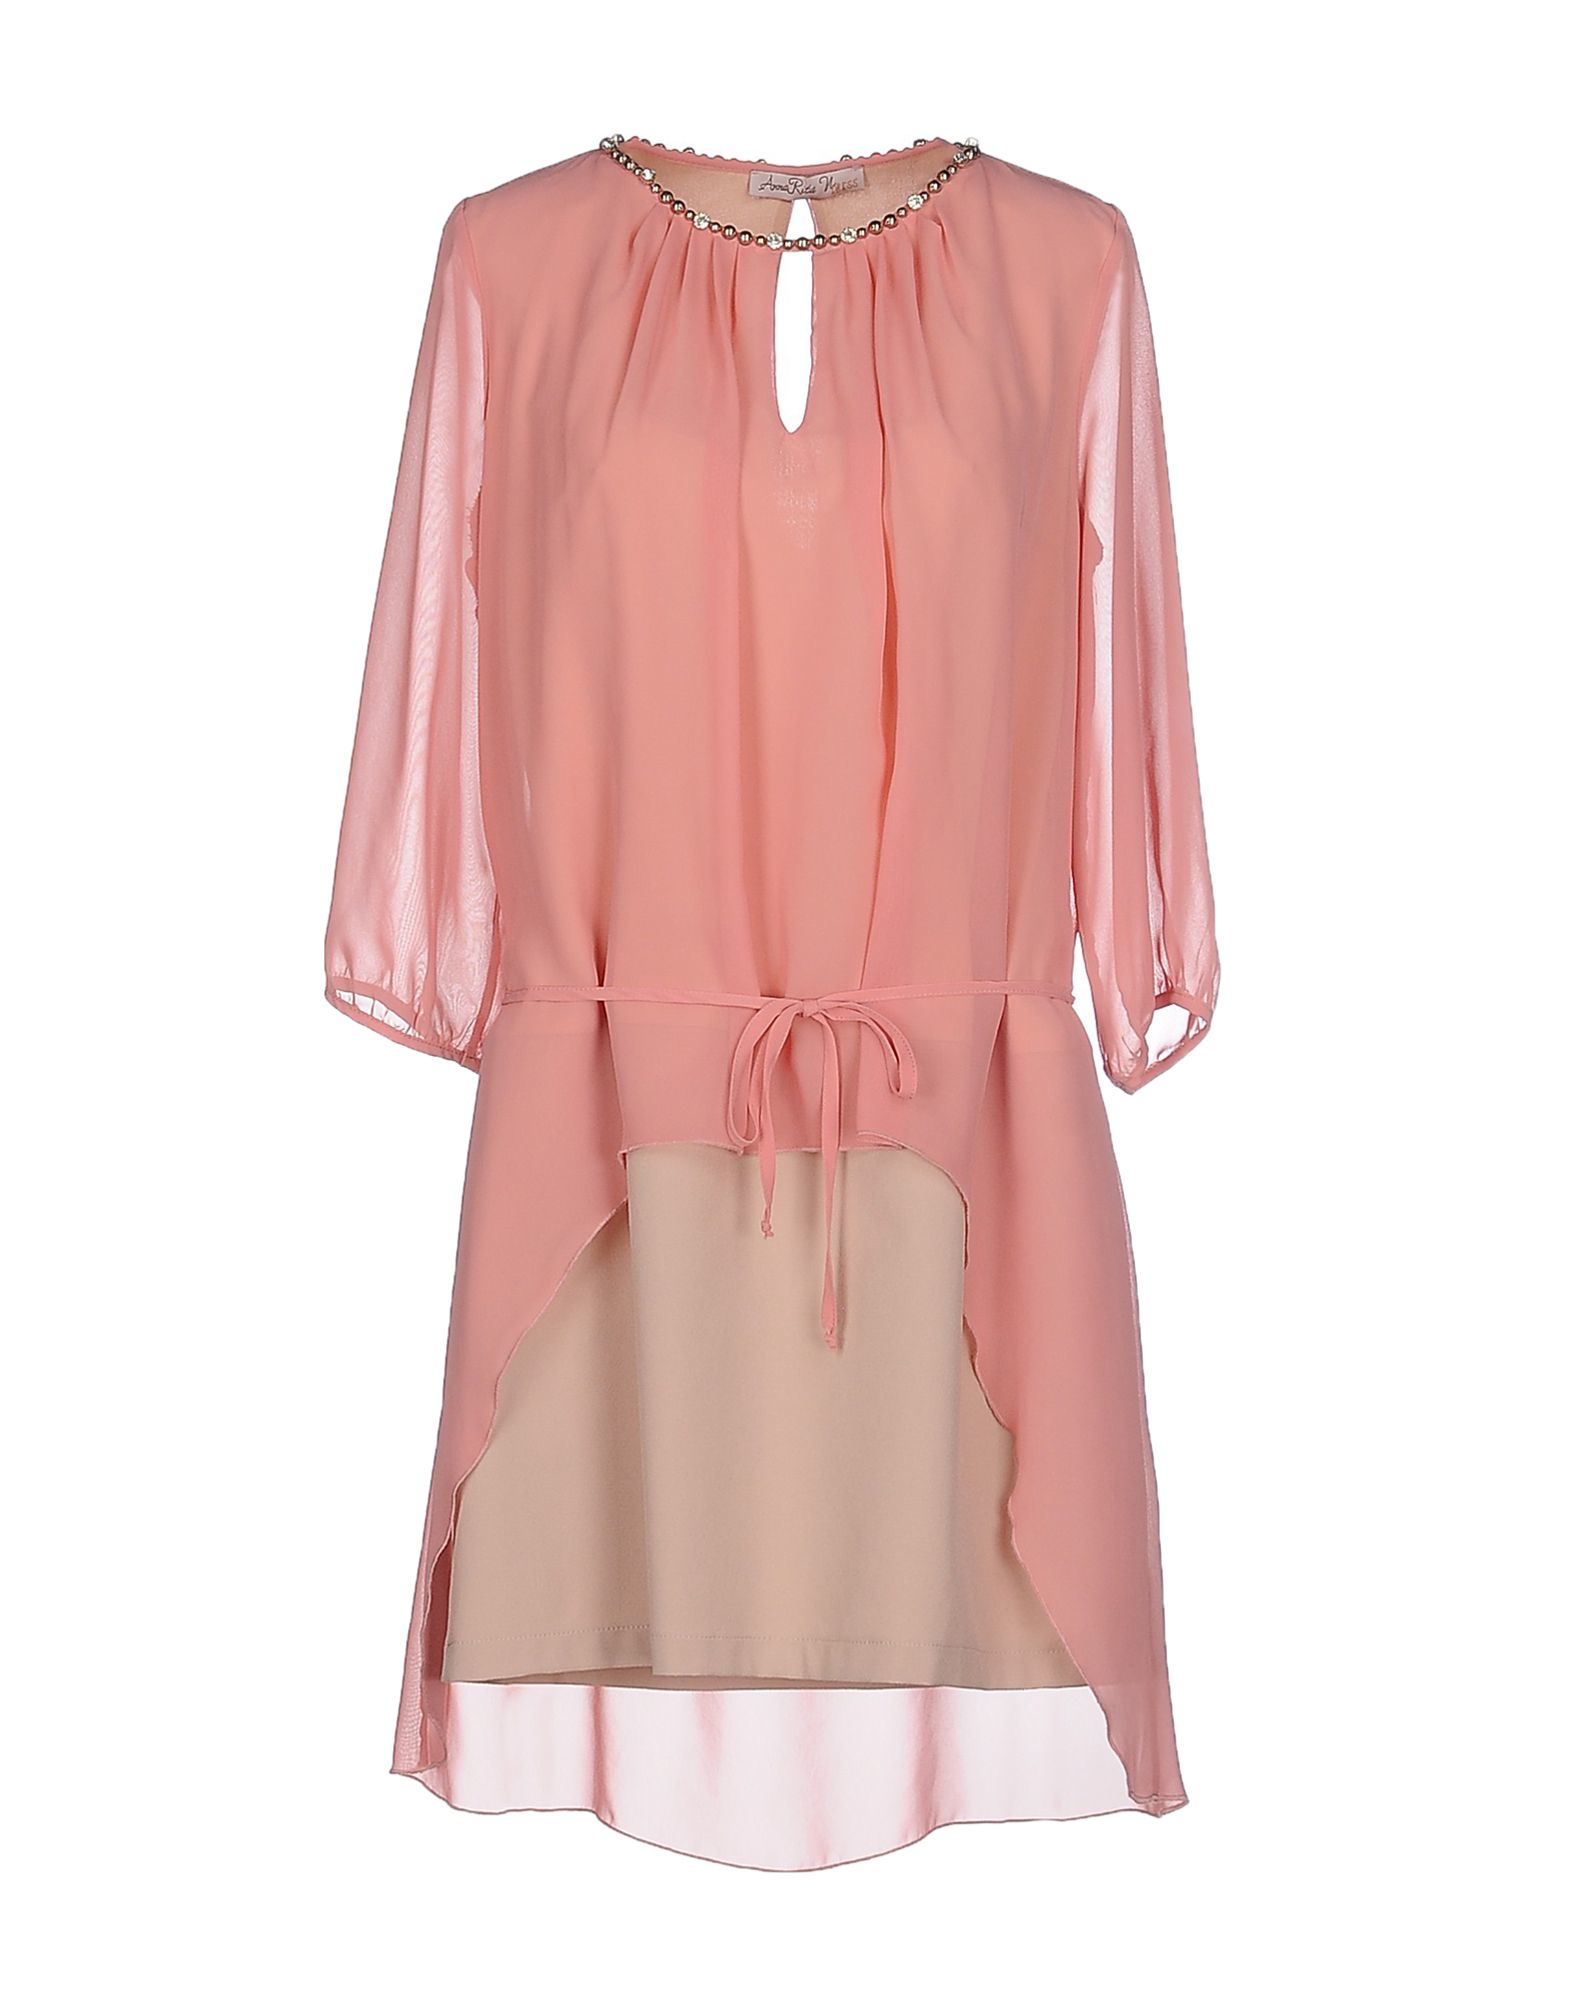 Annarita N Short Dress In Pink Pastel Pink Save 46